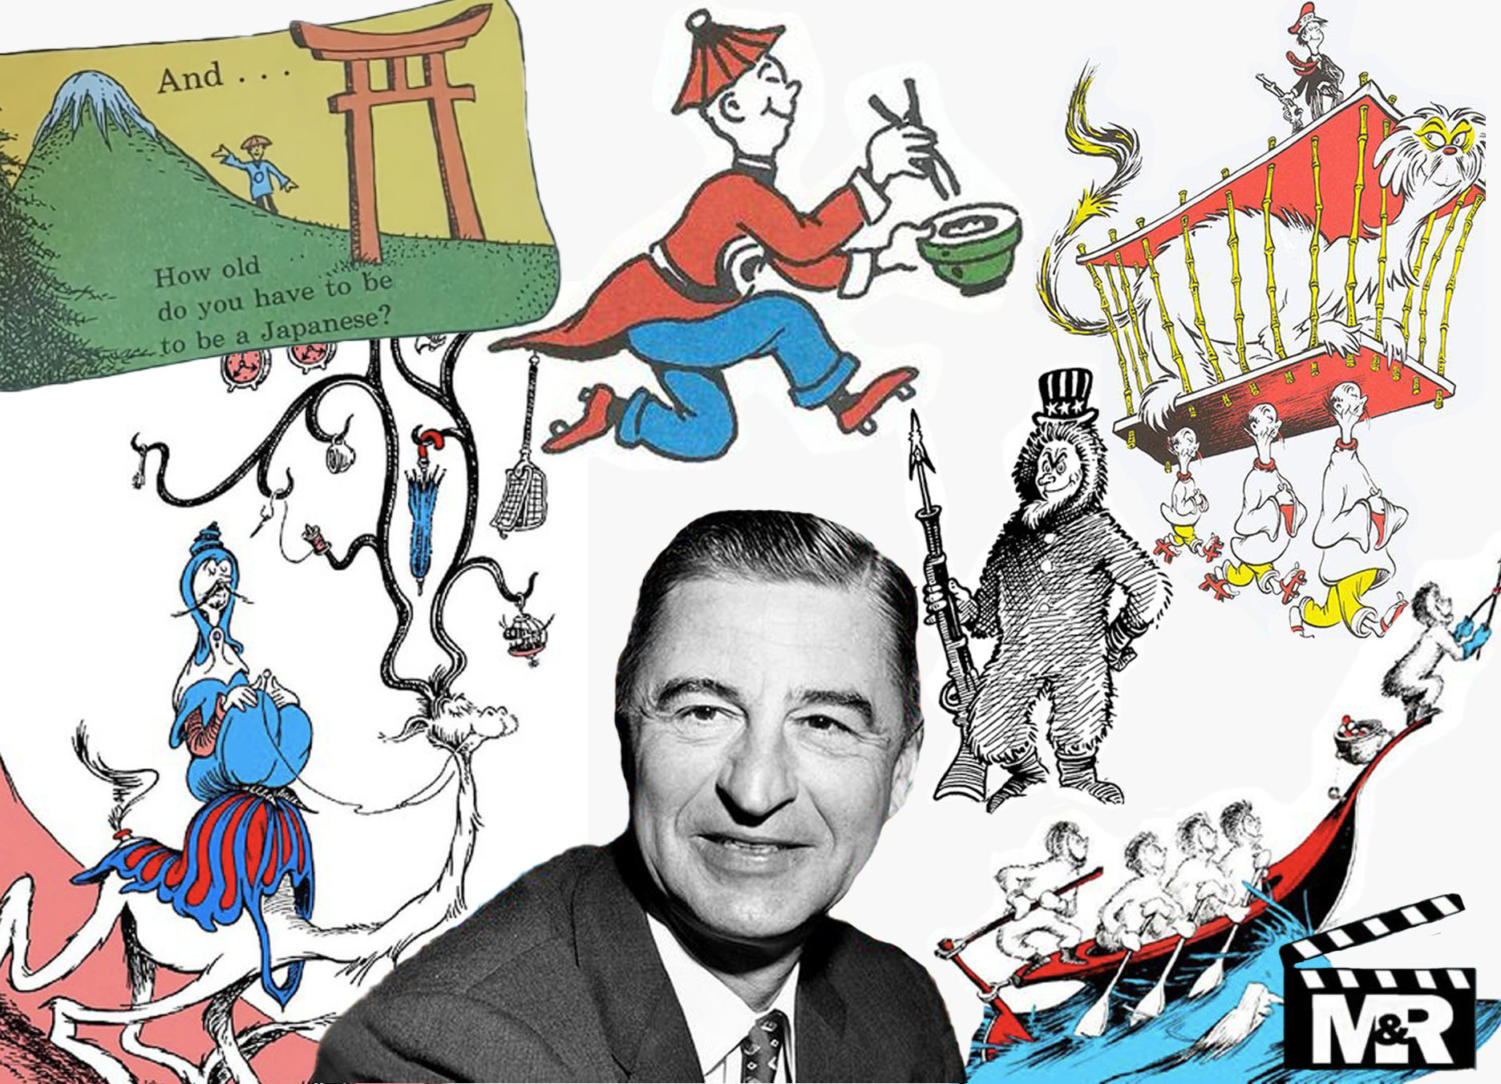 A collage of all the racist imagery found in Dr. Seuss